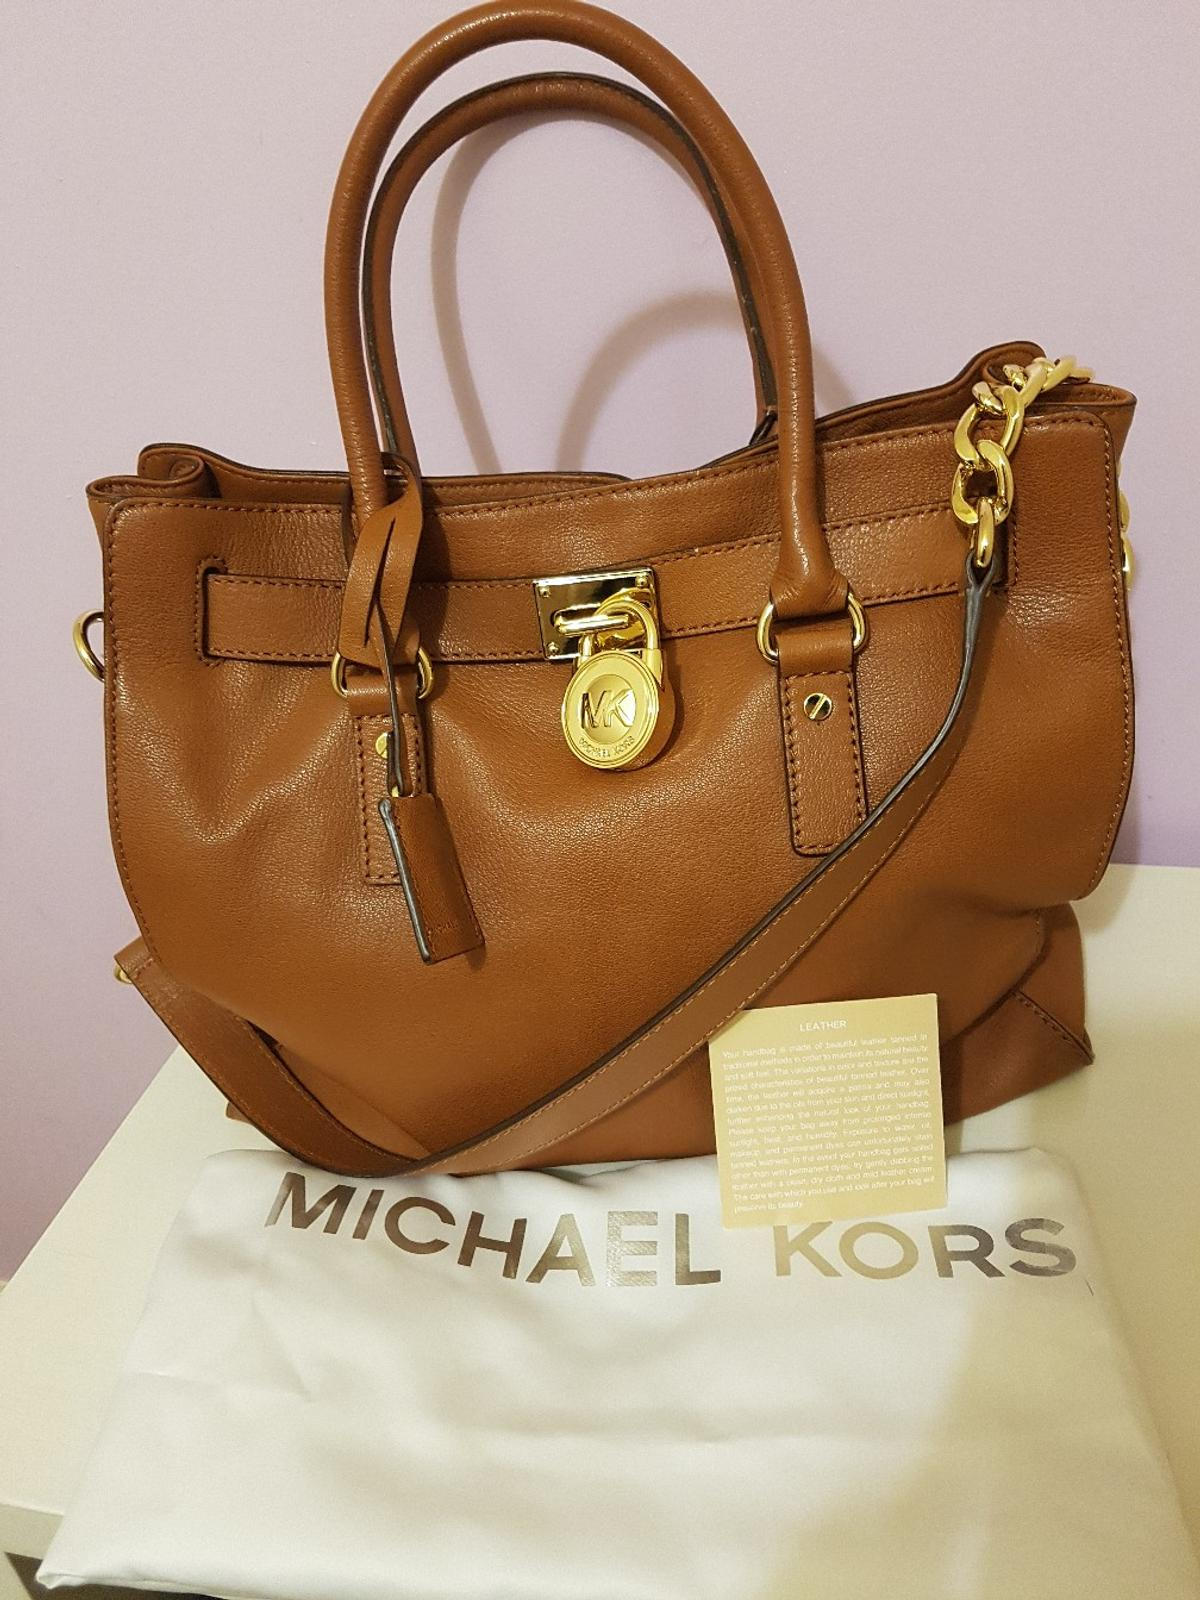 37b3660abe80 Description. Hi, Ladies and gents. I'm selling my lovely Michael Kors  handbag. - Real Leather.